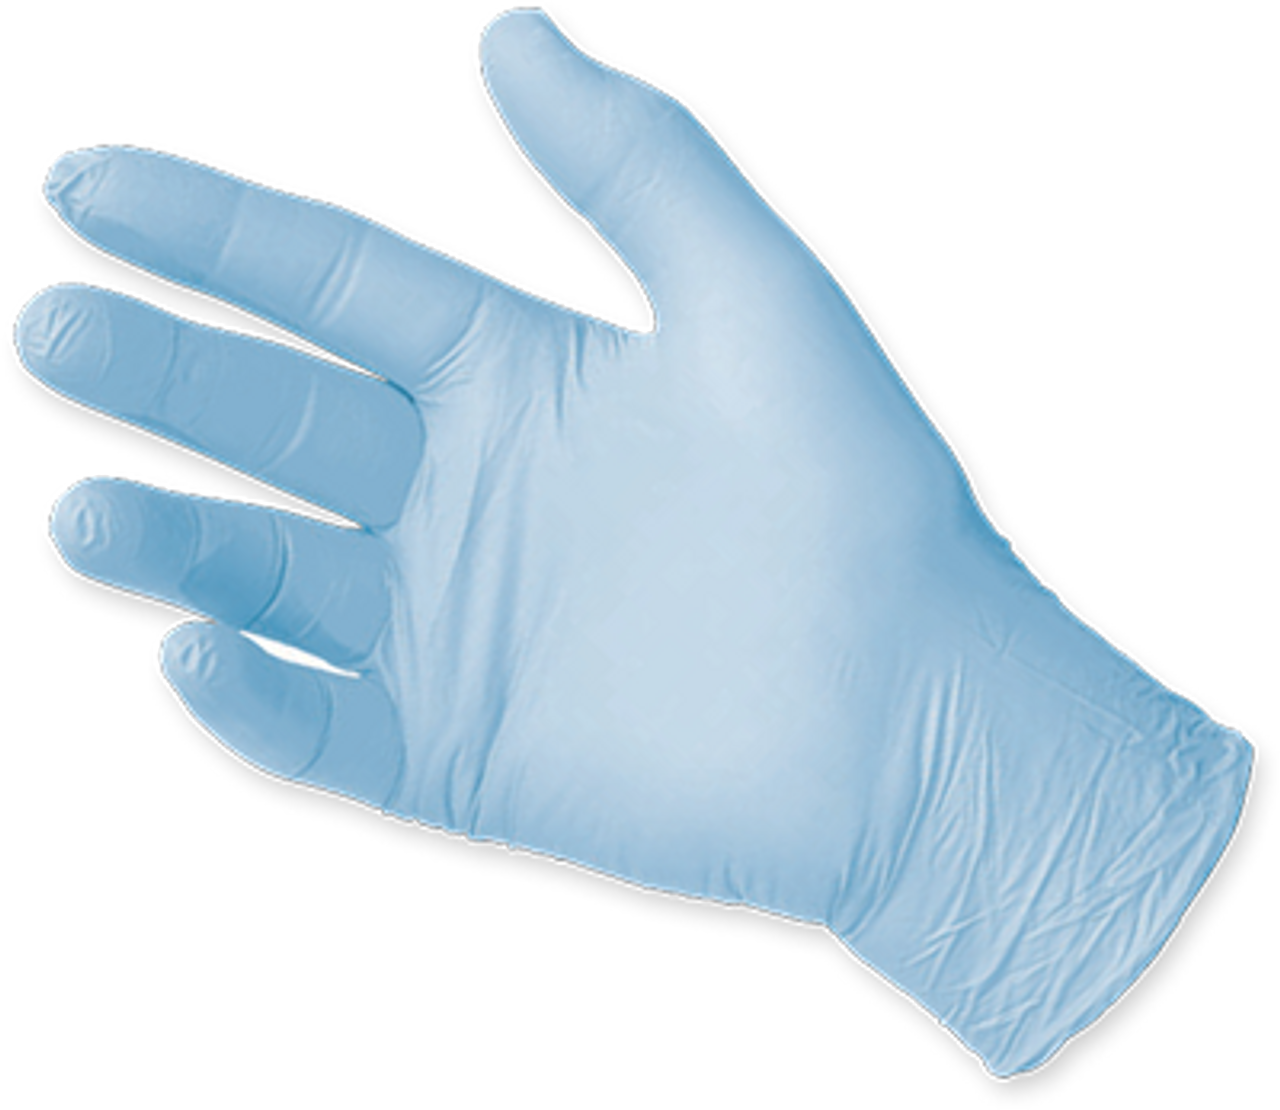 XCEED PF Nitrile Exam Gloves, $10.39 per 100 gloves, 10 boxes of 250 per case